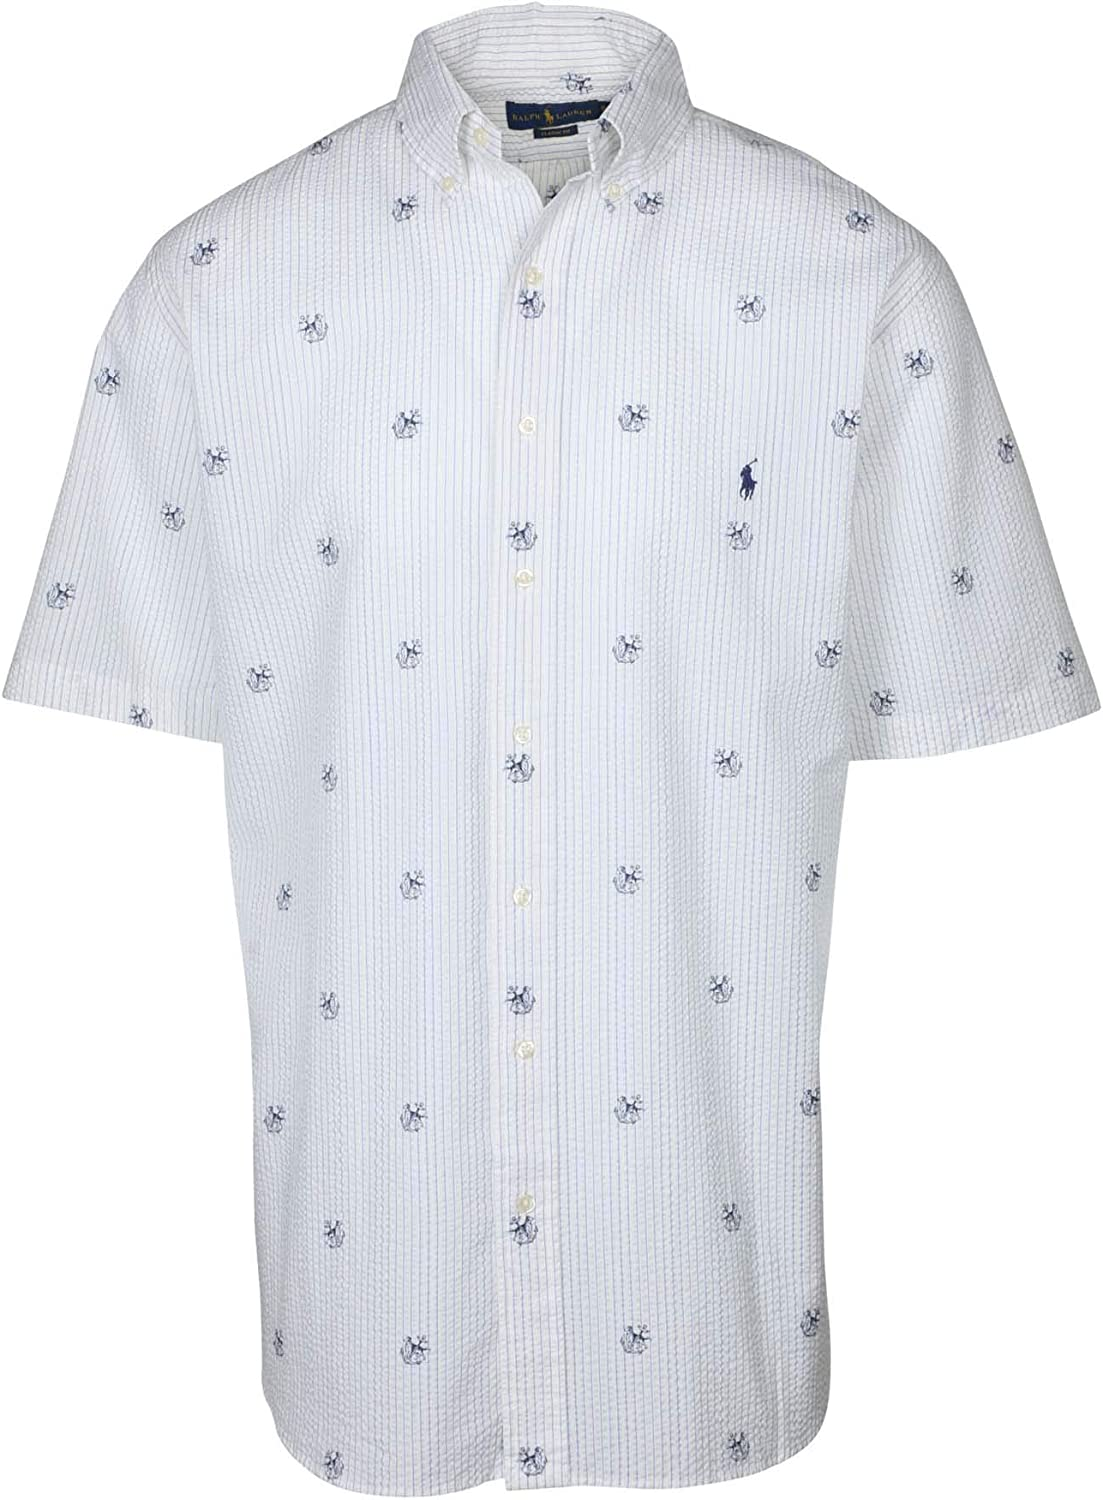 Polo RL Men's Big and Tall Classic Fit Dog Anchor Shirt